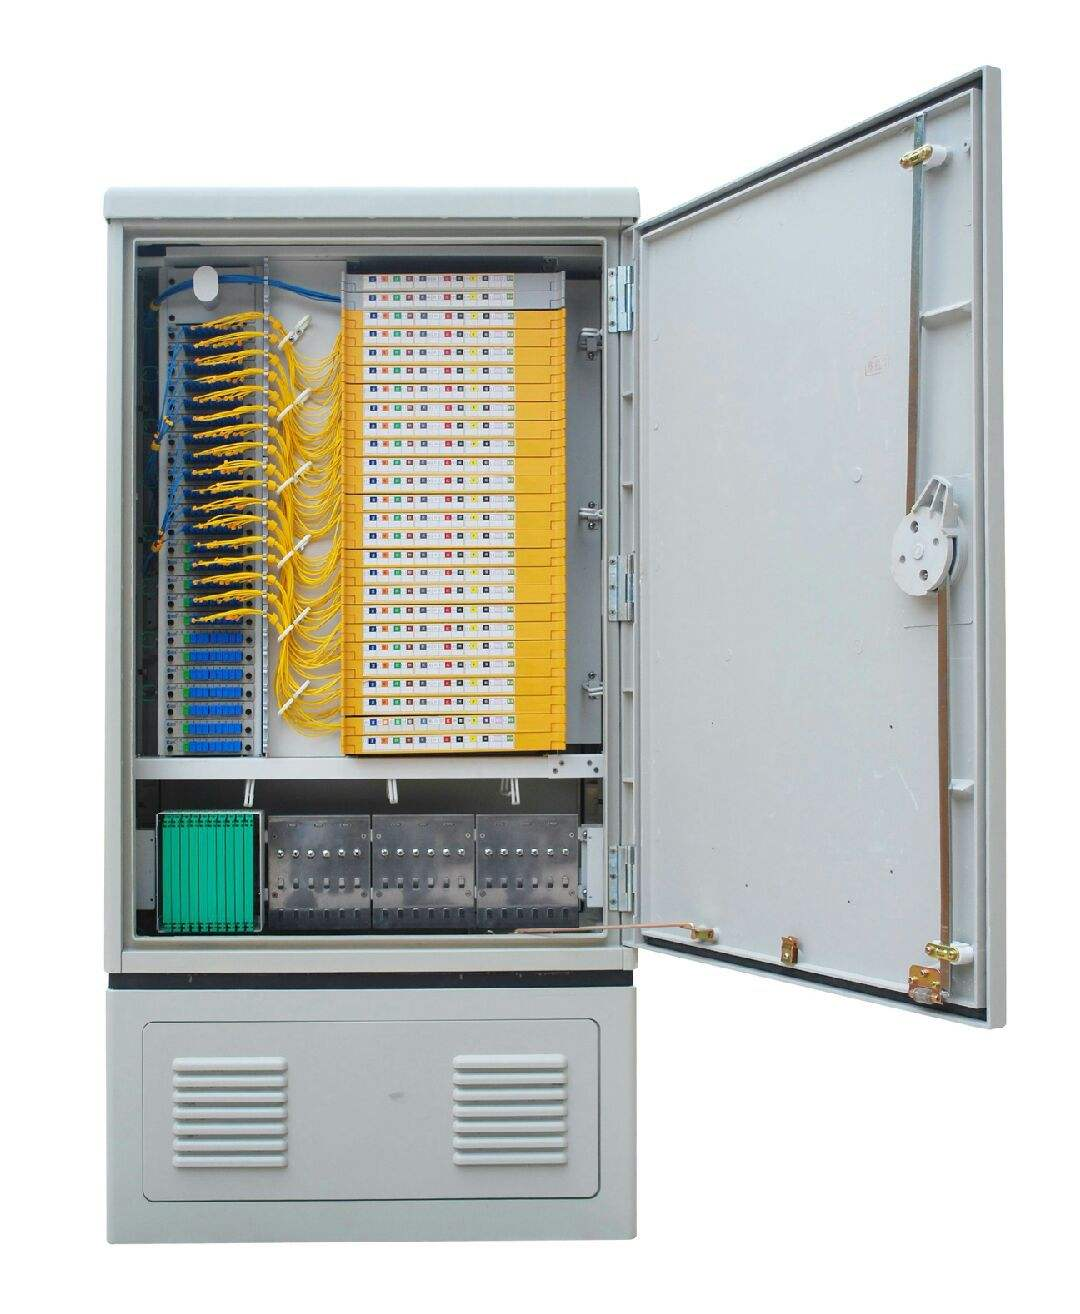 FTTH Fiber Cross SMC 96 core 144 core 288 core 576 core Connect Cabinet